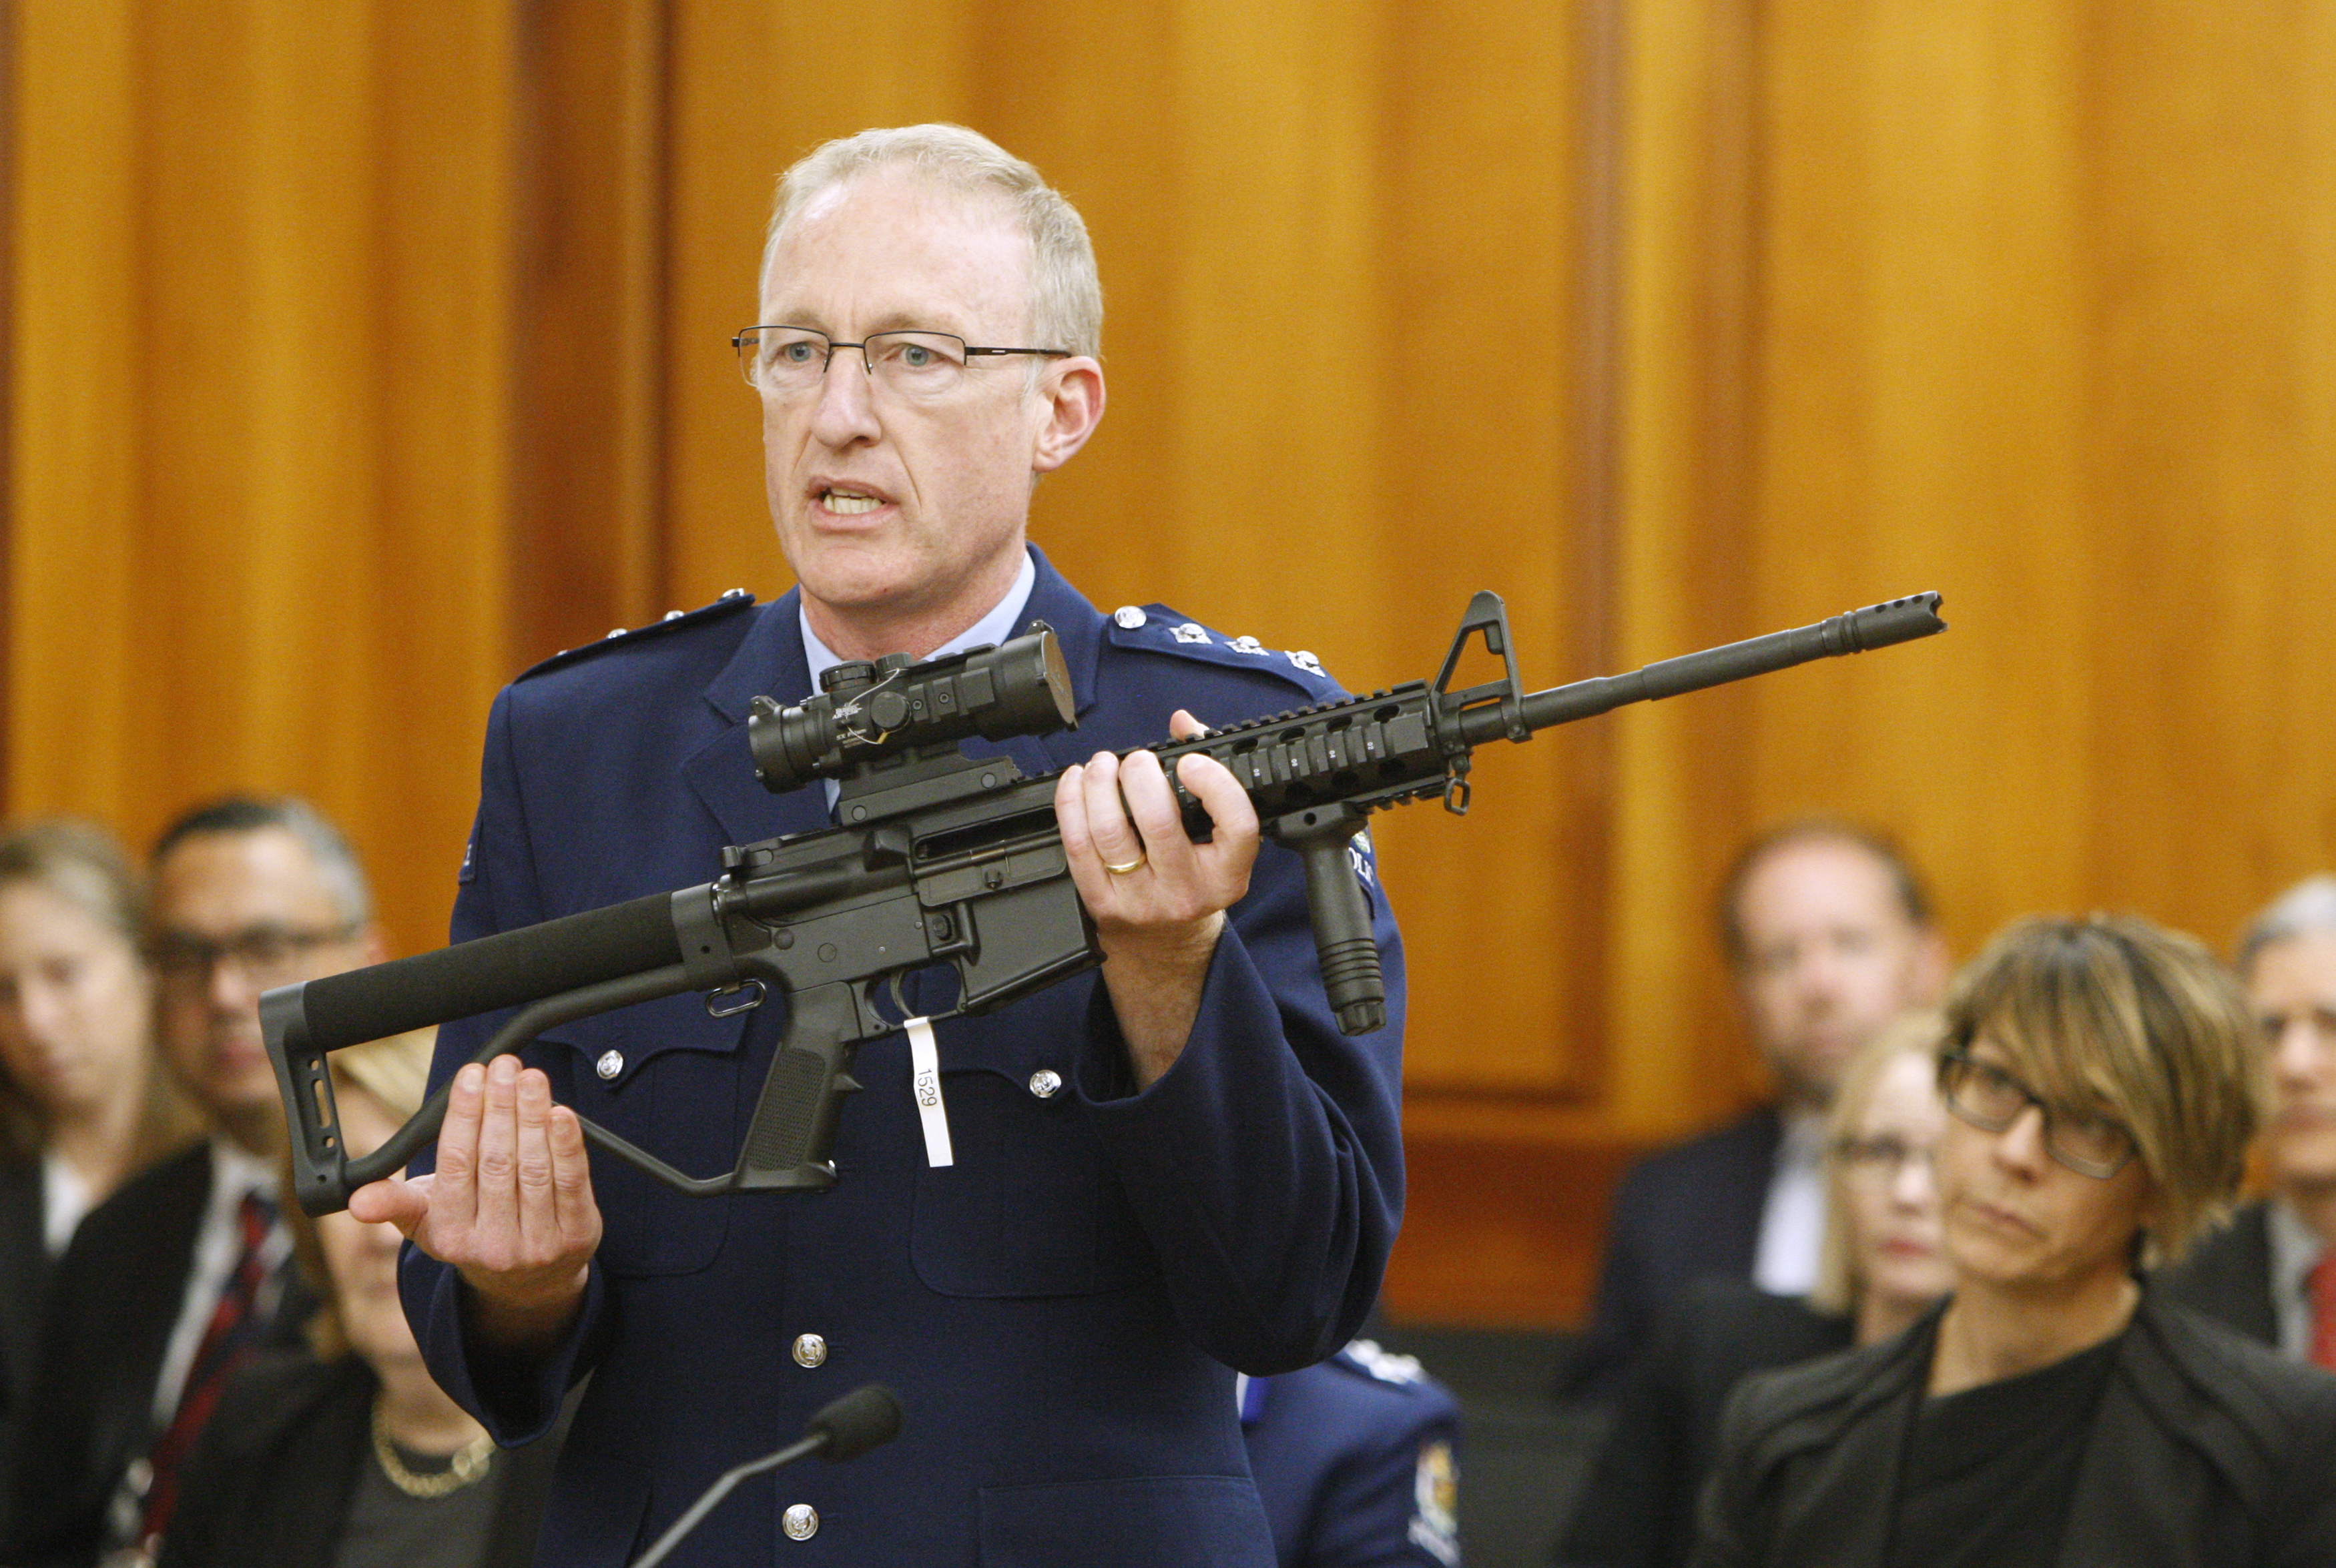 Proposed New Zealand law says owning guns is not a right